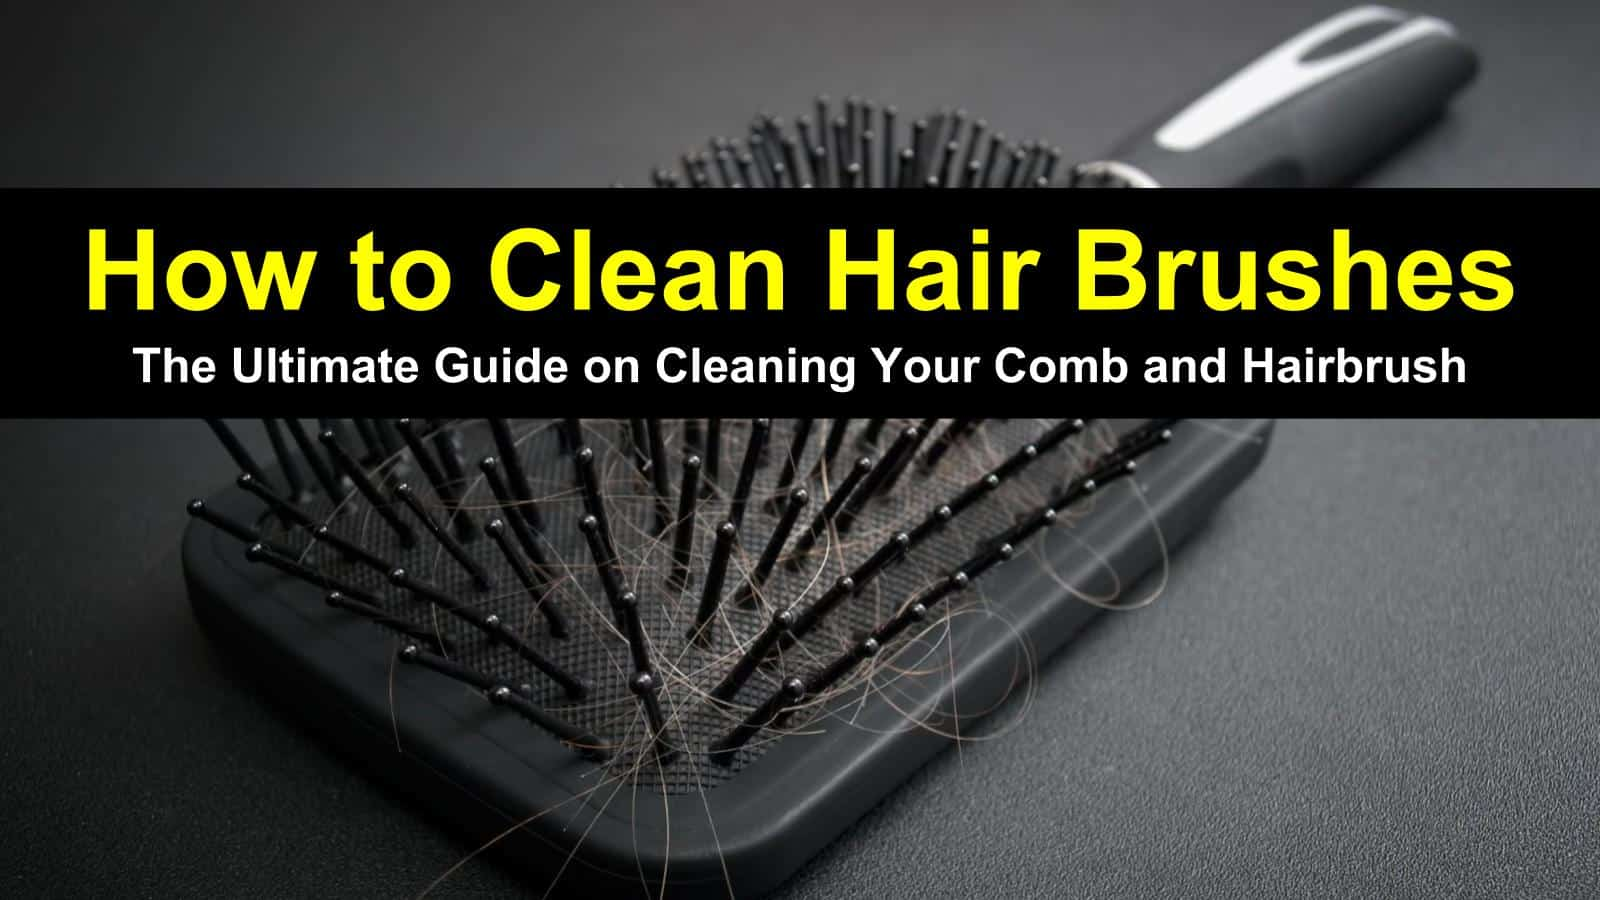 how to clean hair brushes title image